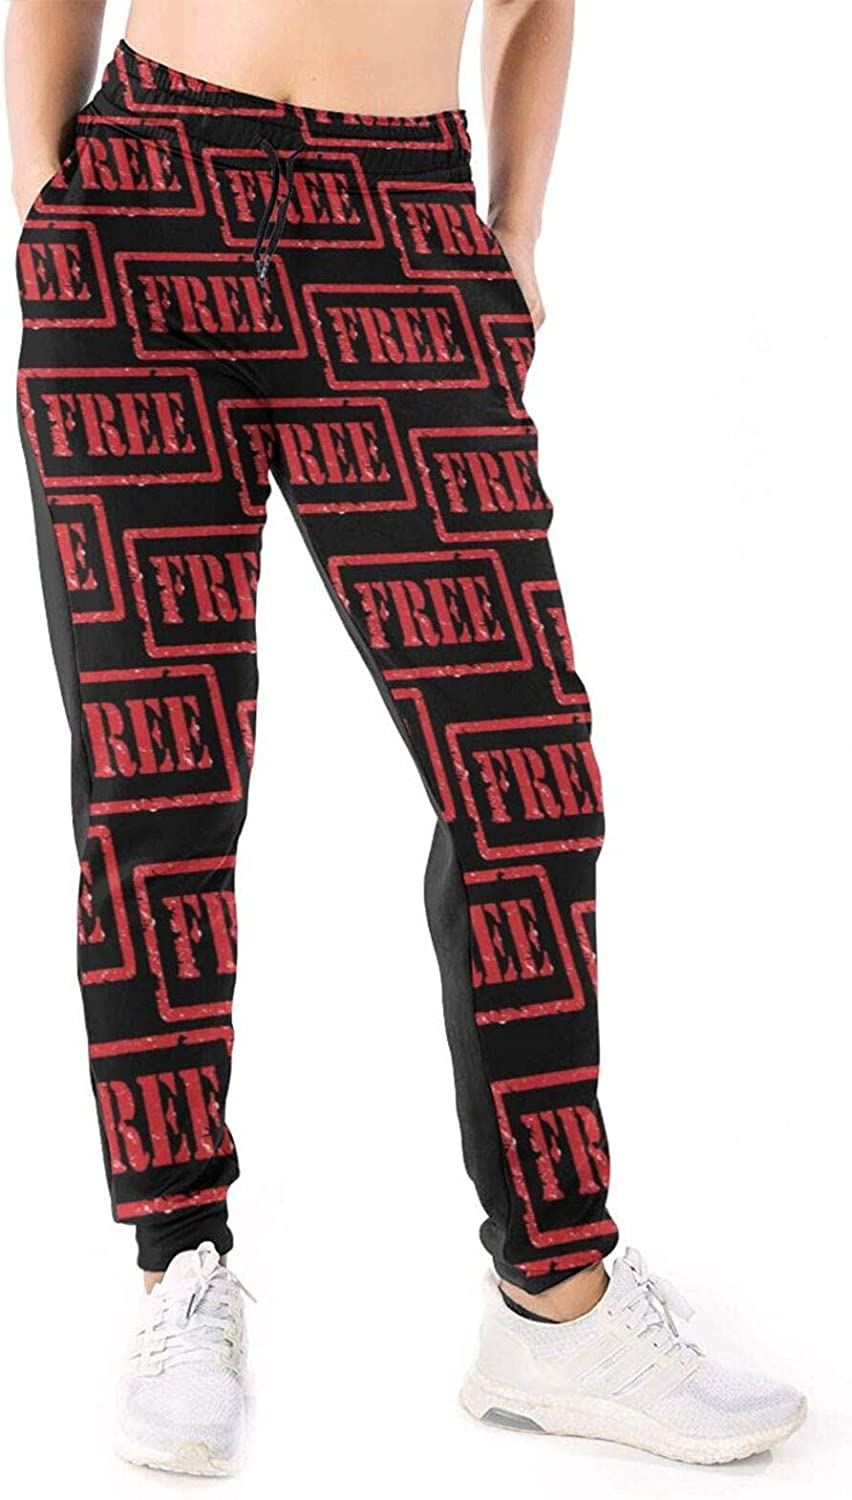 Women Joggers Pants Free Stamp Vintage Athletic Sweatpants with Pockets Casual Trousers Baggy